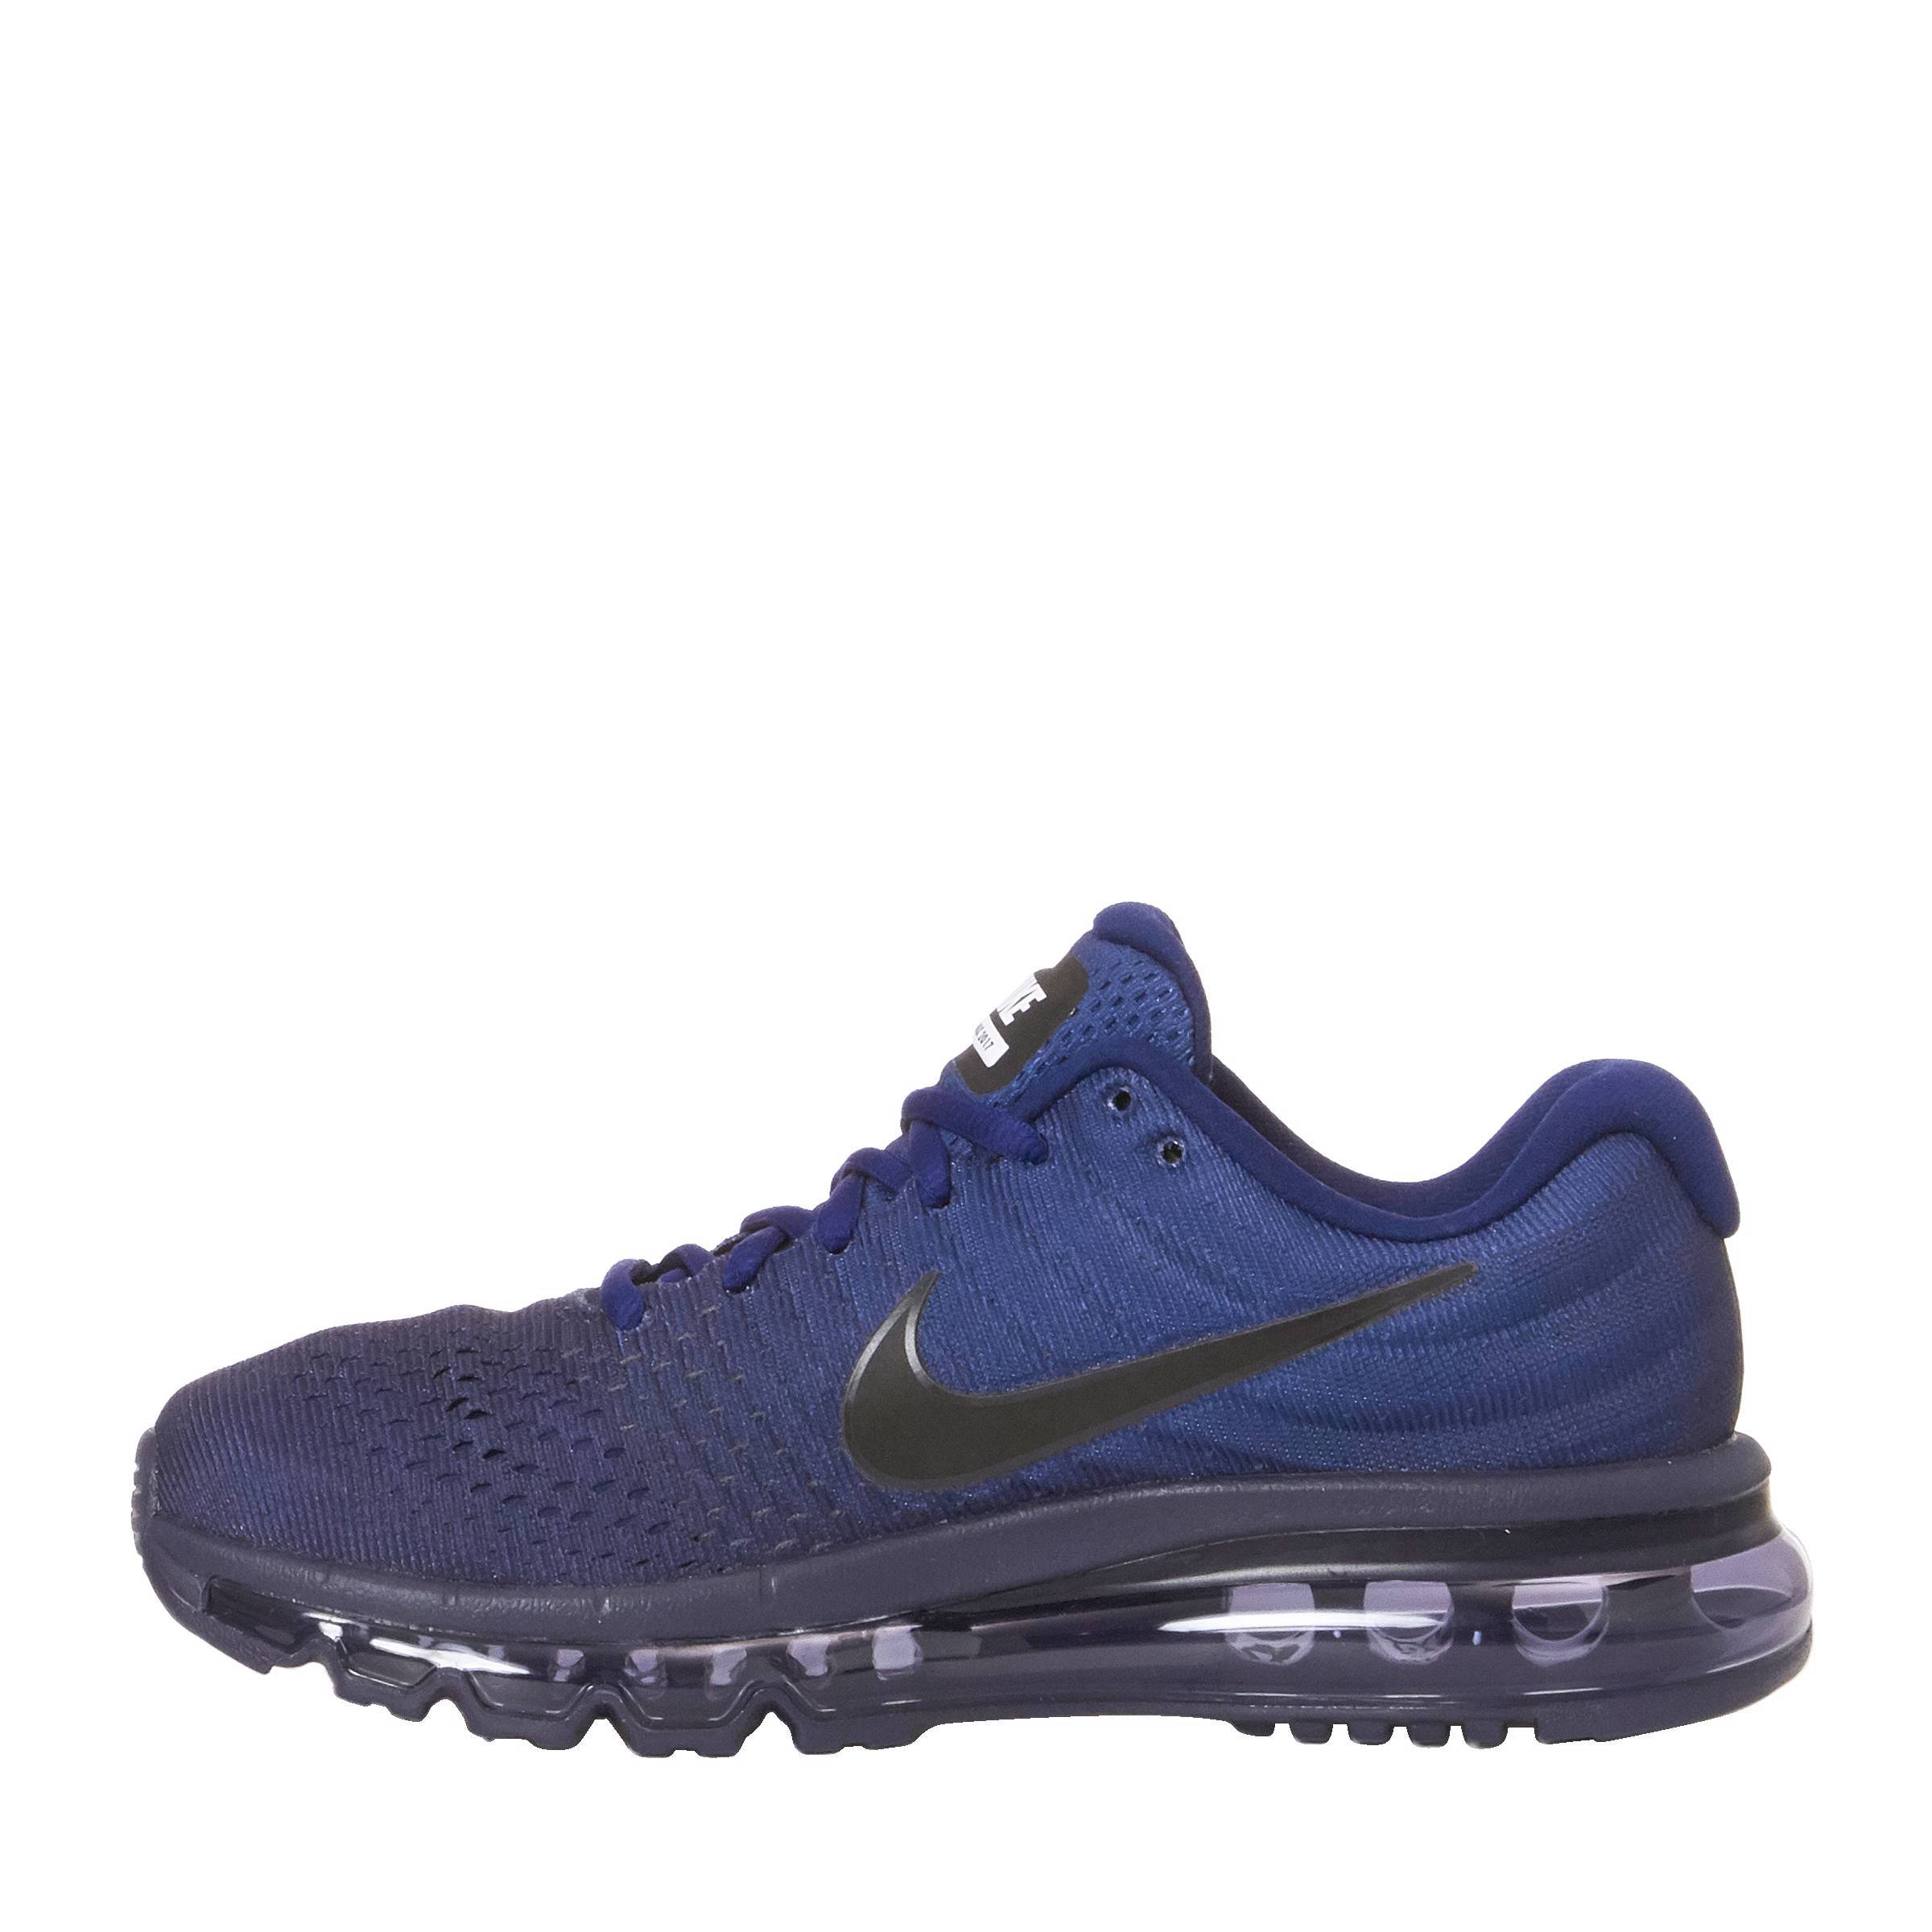 new style 8a080 e3109 nike-air-max-2017-sneakers-donkerblauw-0887225864835.jpg